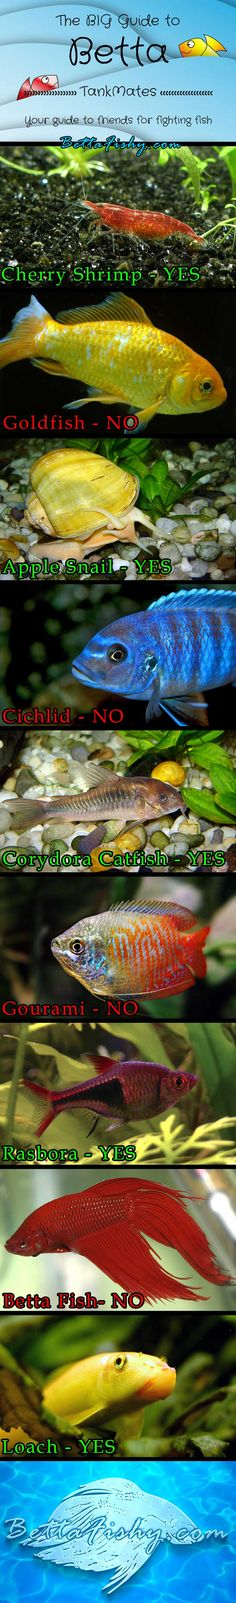 Learn which fish and other creatures get along with these feisty betta fish!  www.bettafishy.com